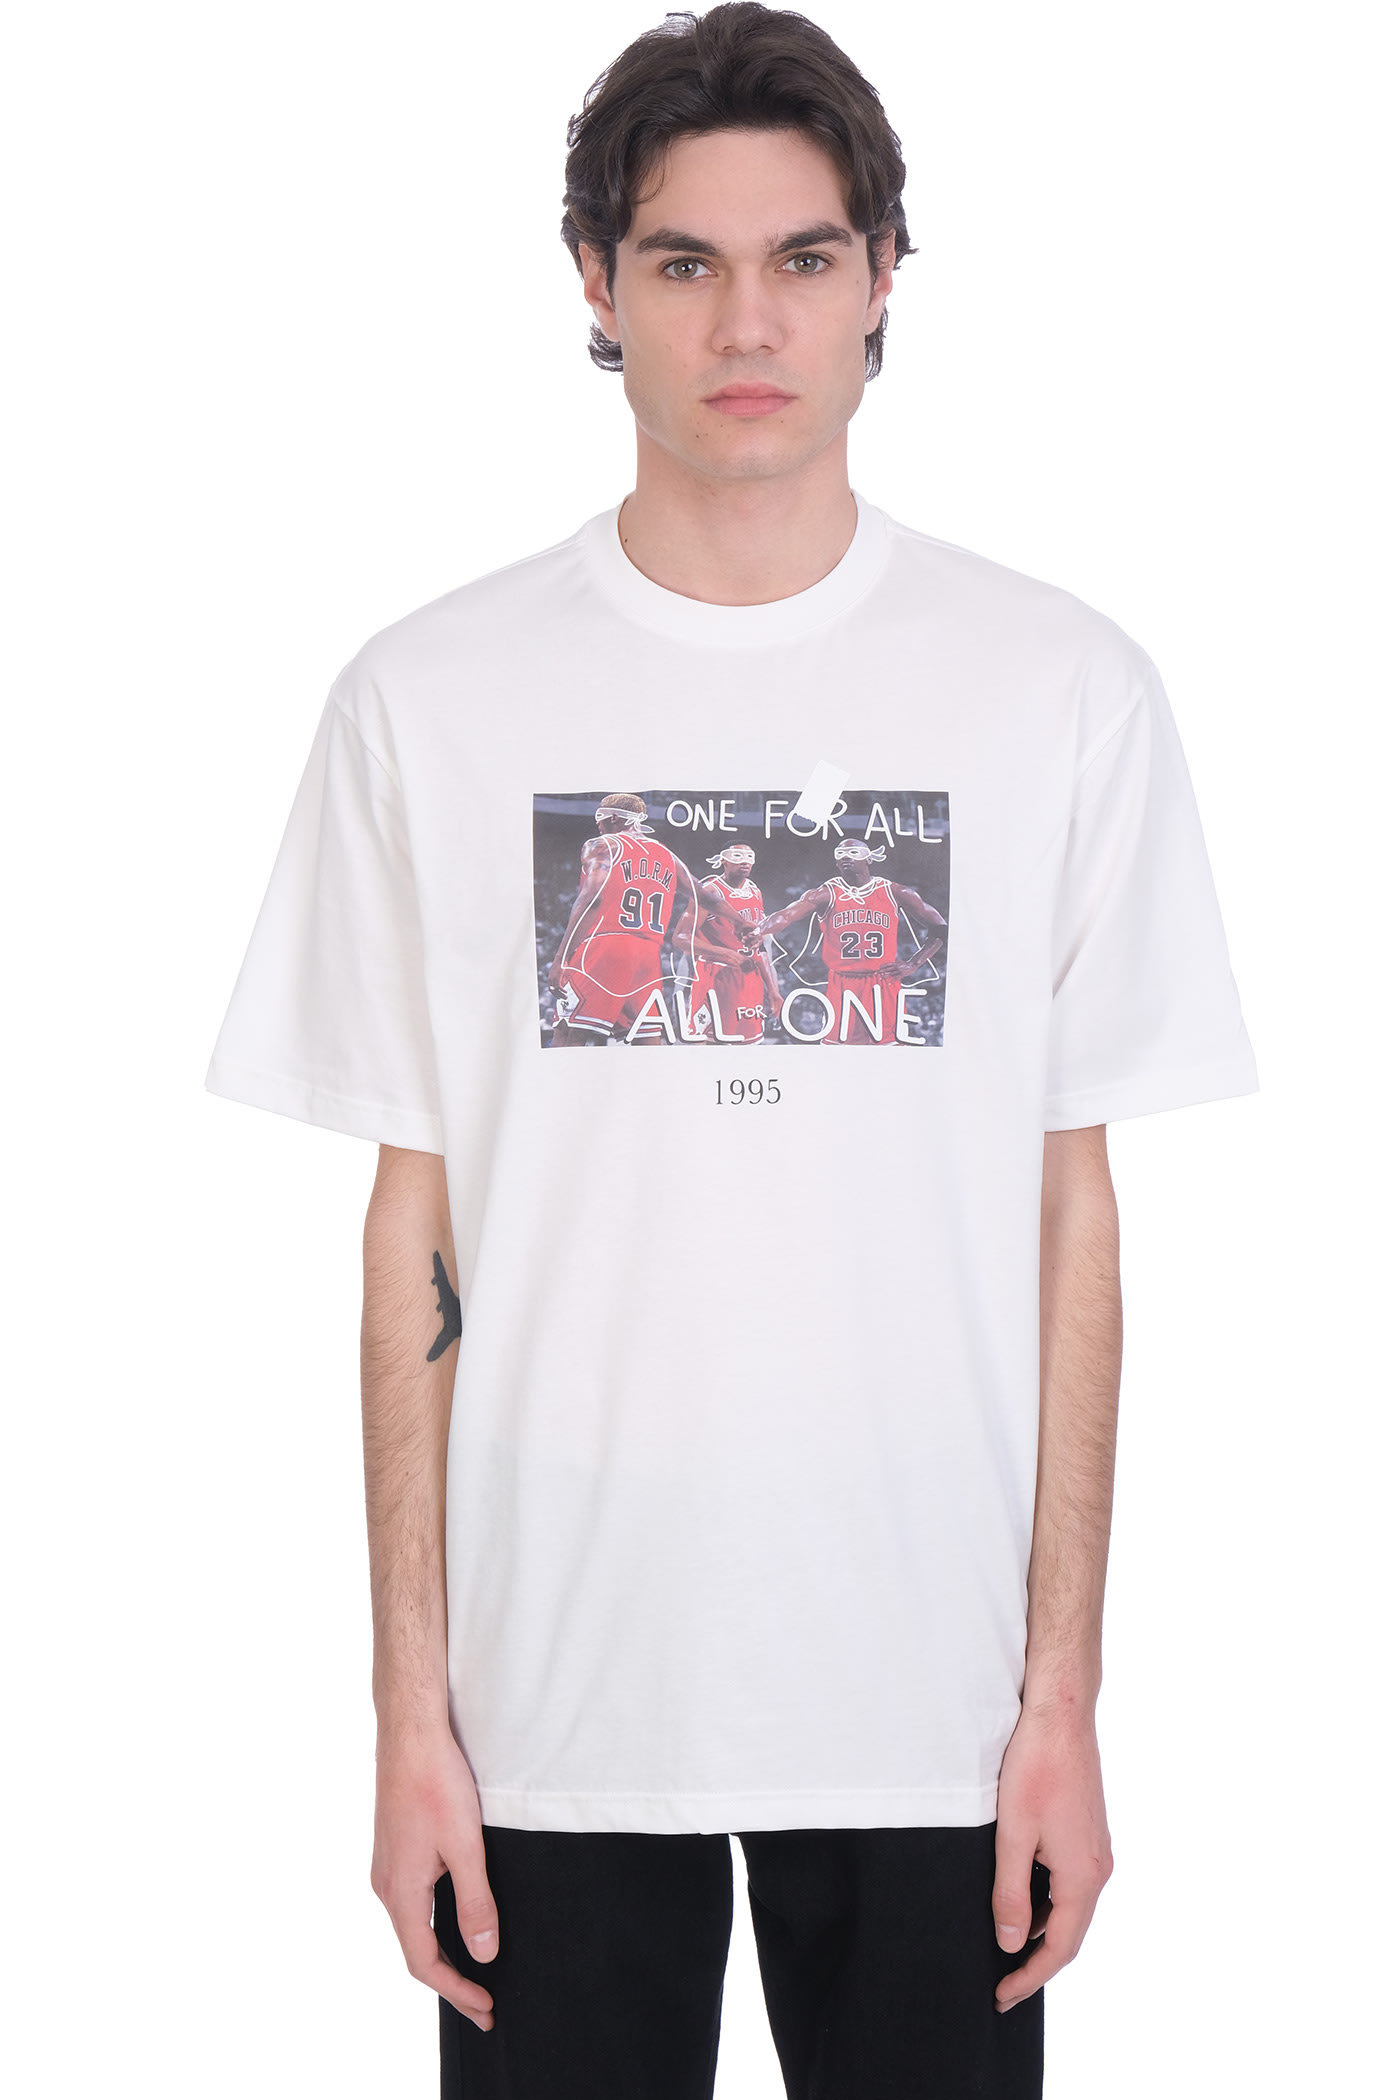 Throwback Cottons T-SHIRT IN WHITE COTTON